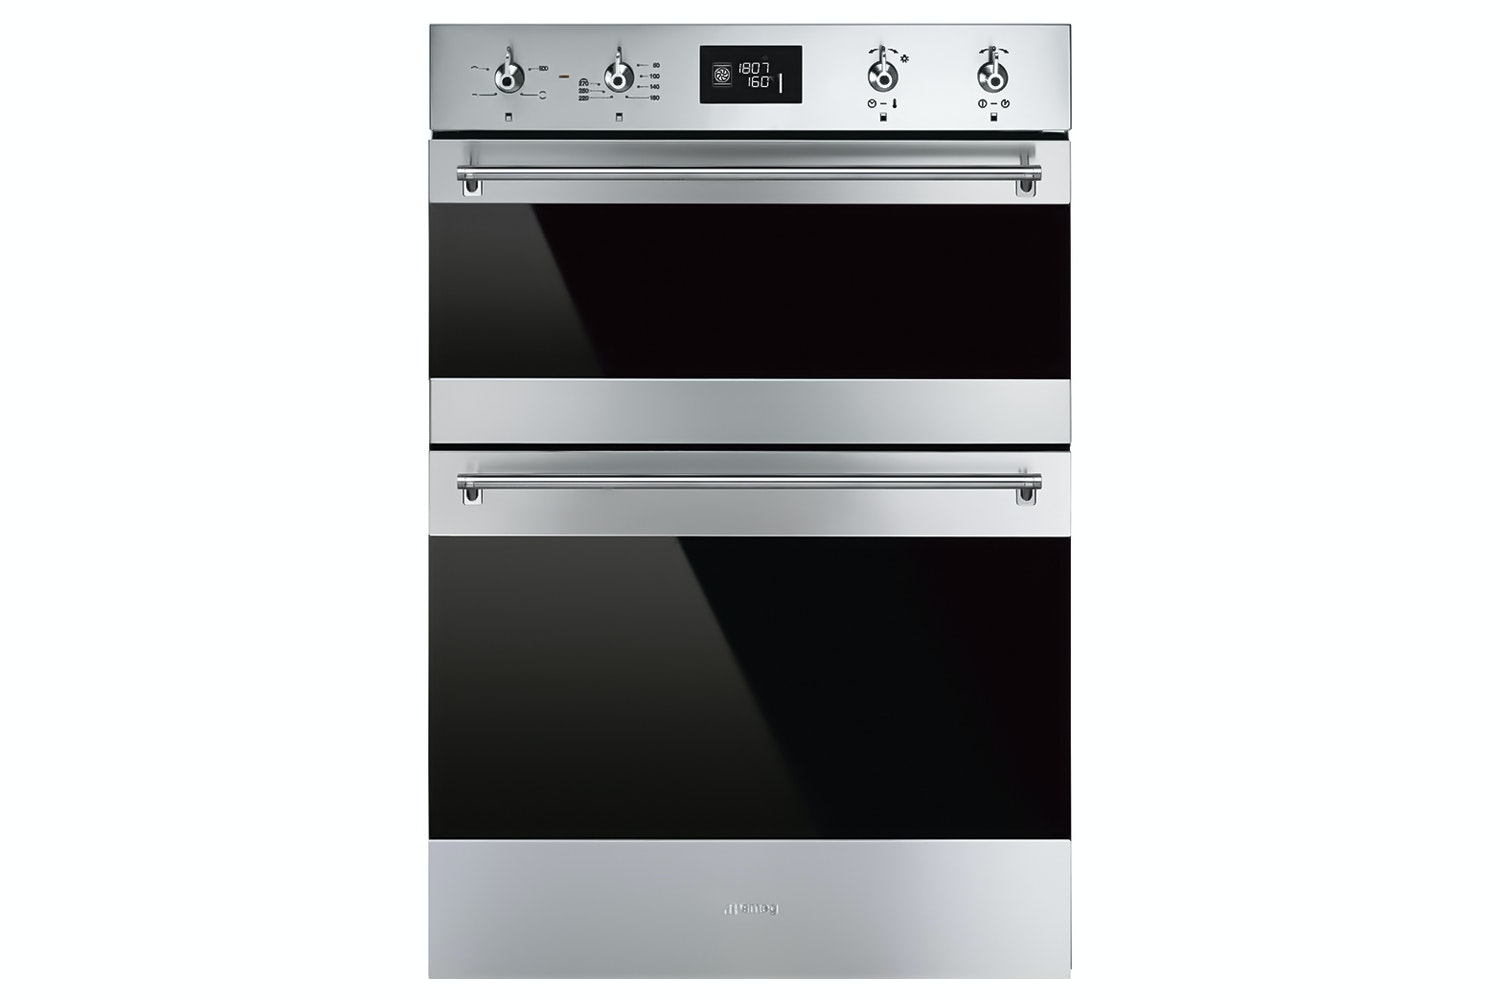 Smeg Built-in Double Oven | DOSF6390X | Stainless Steel